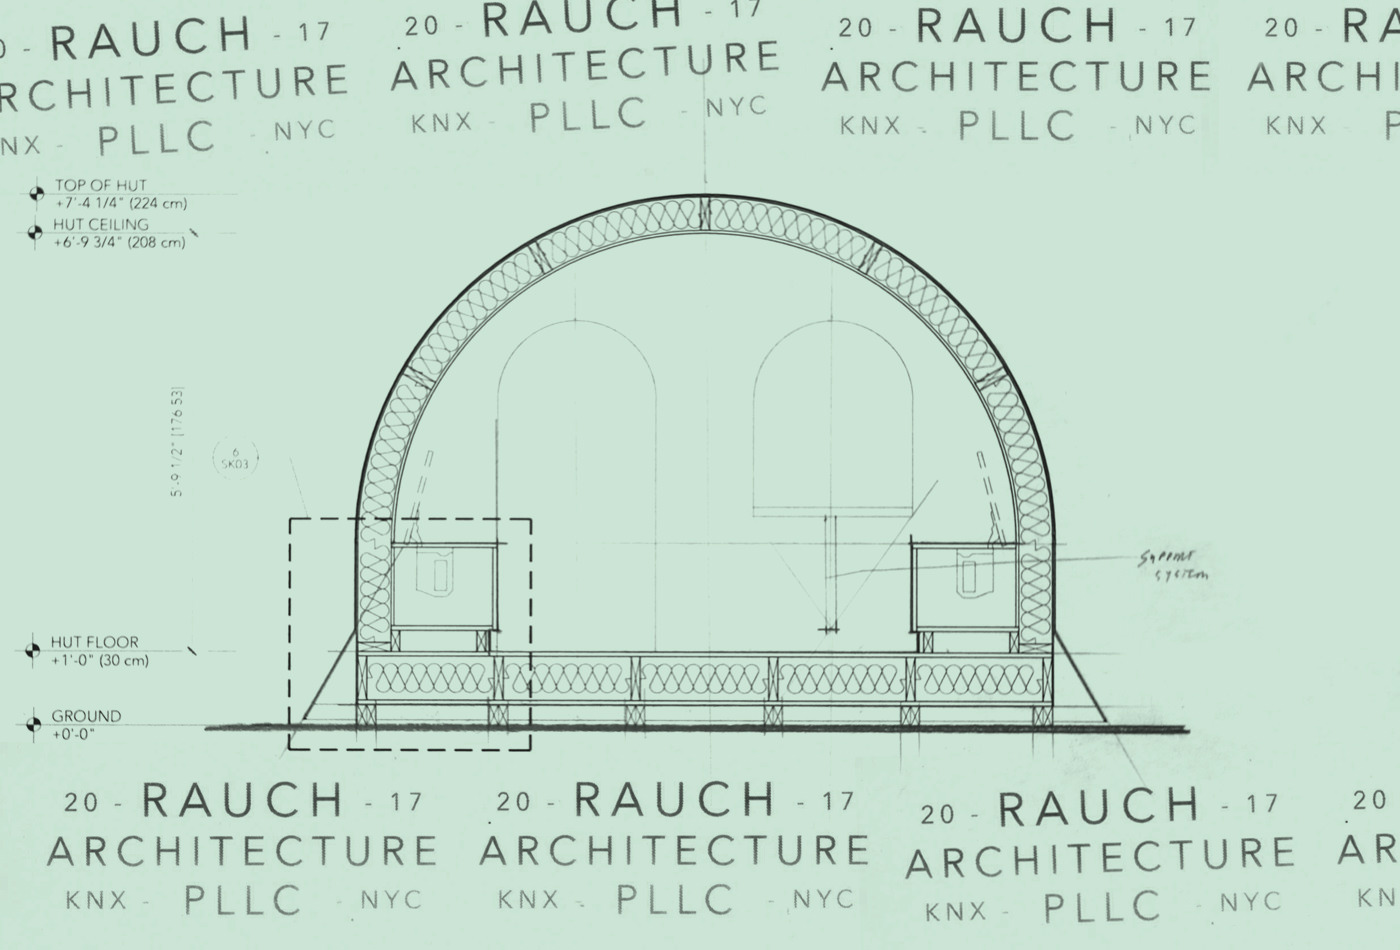 ra-rauch-architecture-matthew-rauch-architecture-pllc-nyc-brooklyn-knx-architect-ppx-modernism-passengerpigeonx-vacaliebres-marks-schematic-plan-NY-1